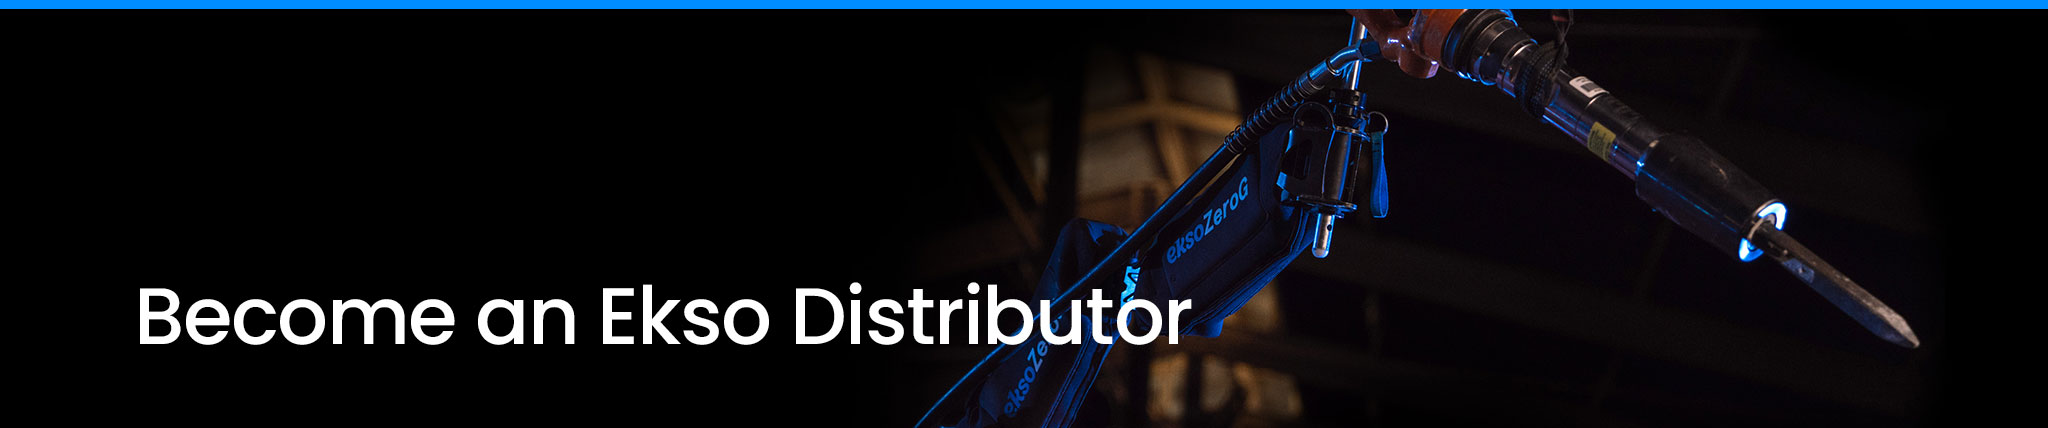 Become an Ekso Distributer.